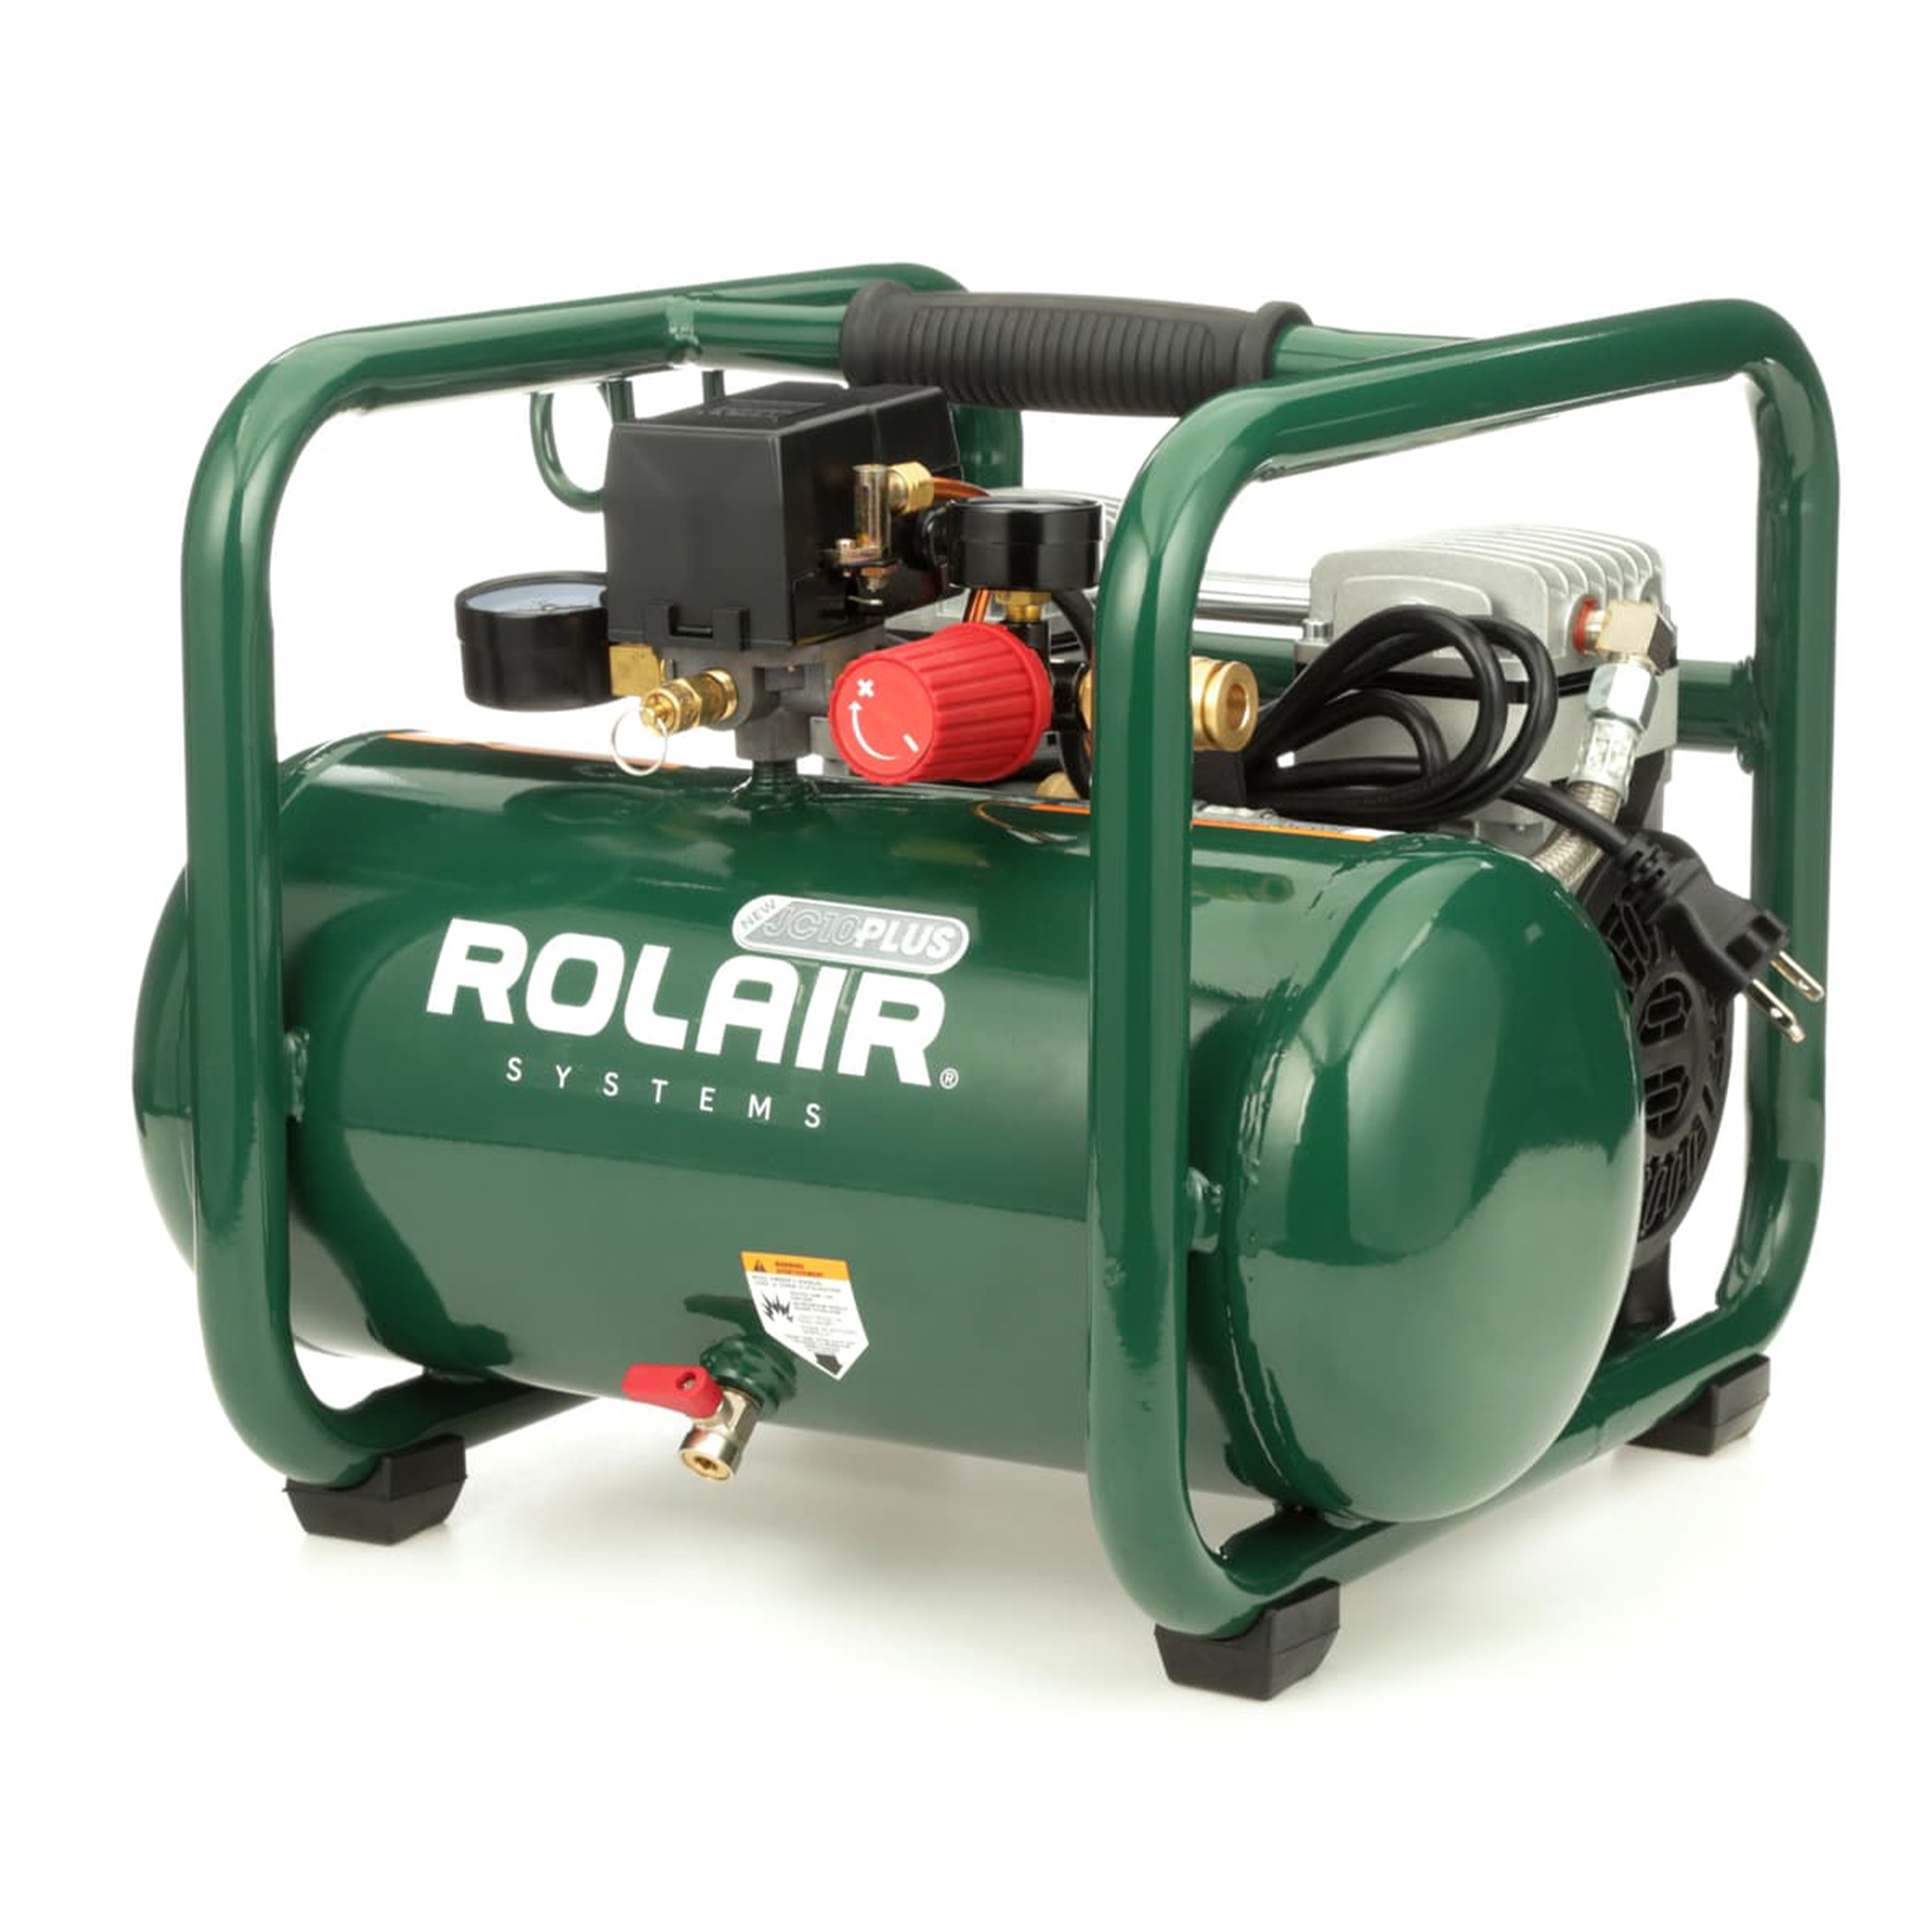 Electric Air Compressor >> Details About Rolair Jc10 Plus 2 5 Gallon Portable Electric Air Compressor For Tires And Tools